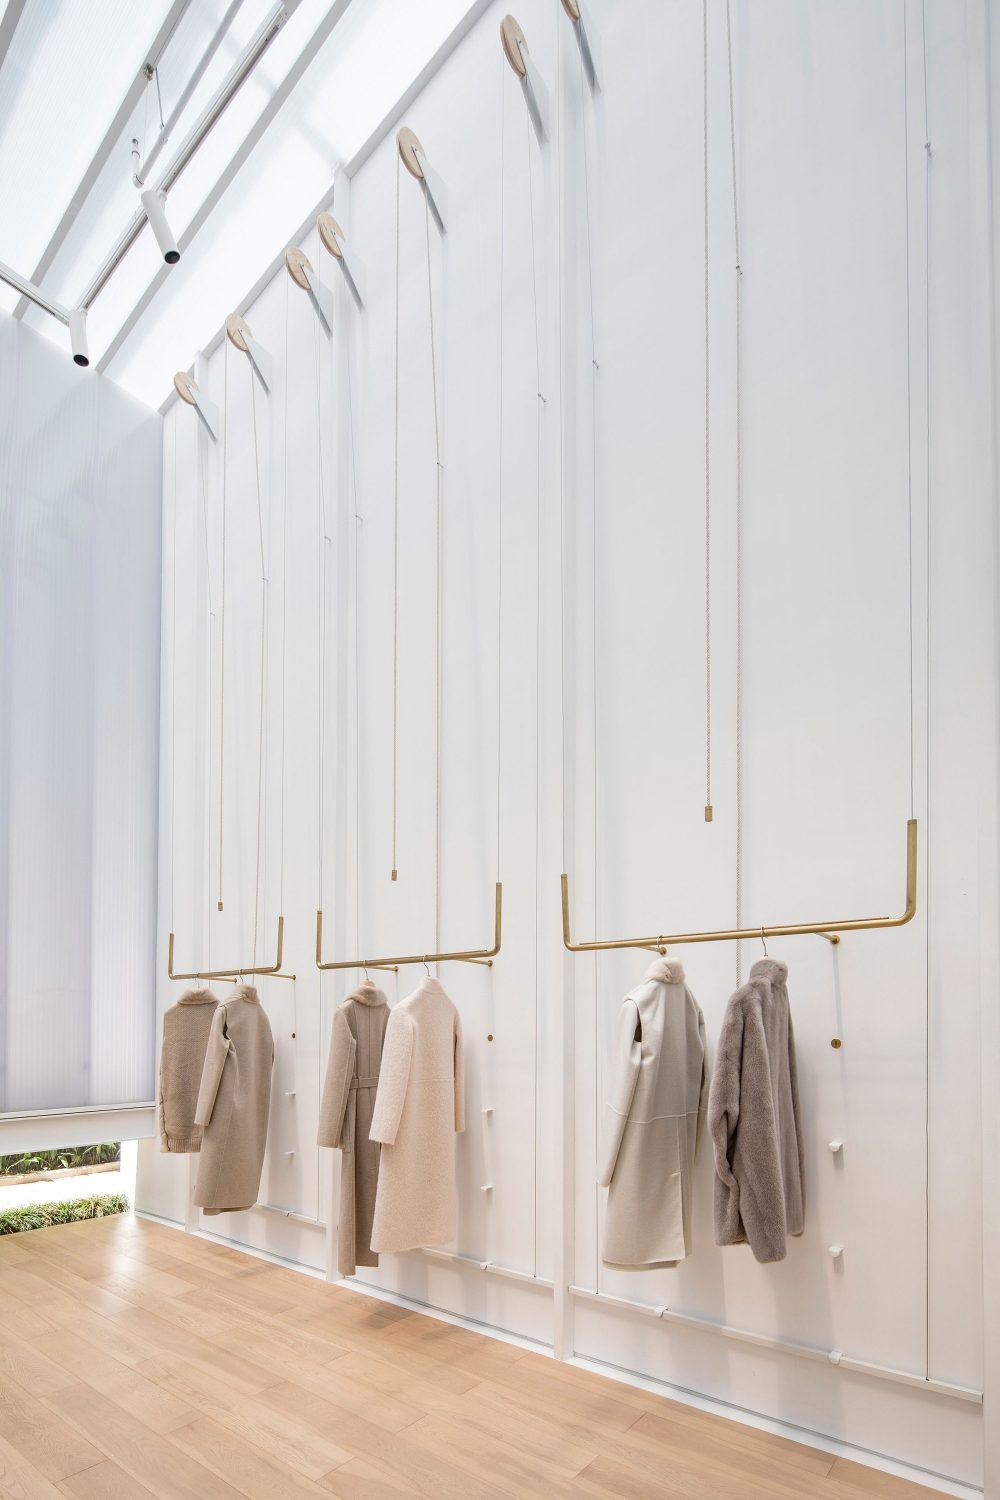 EMME Store by Lukstudio